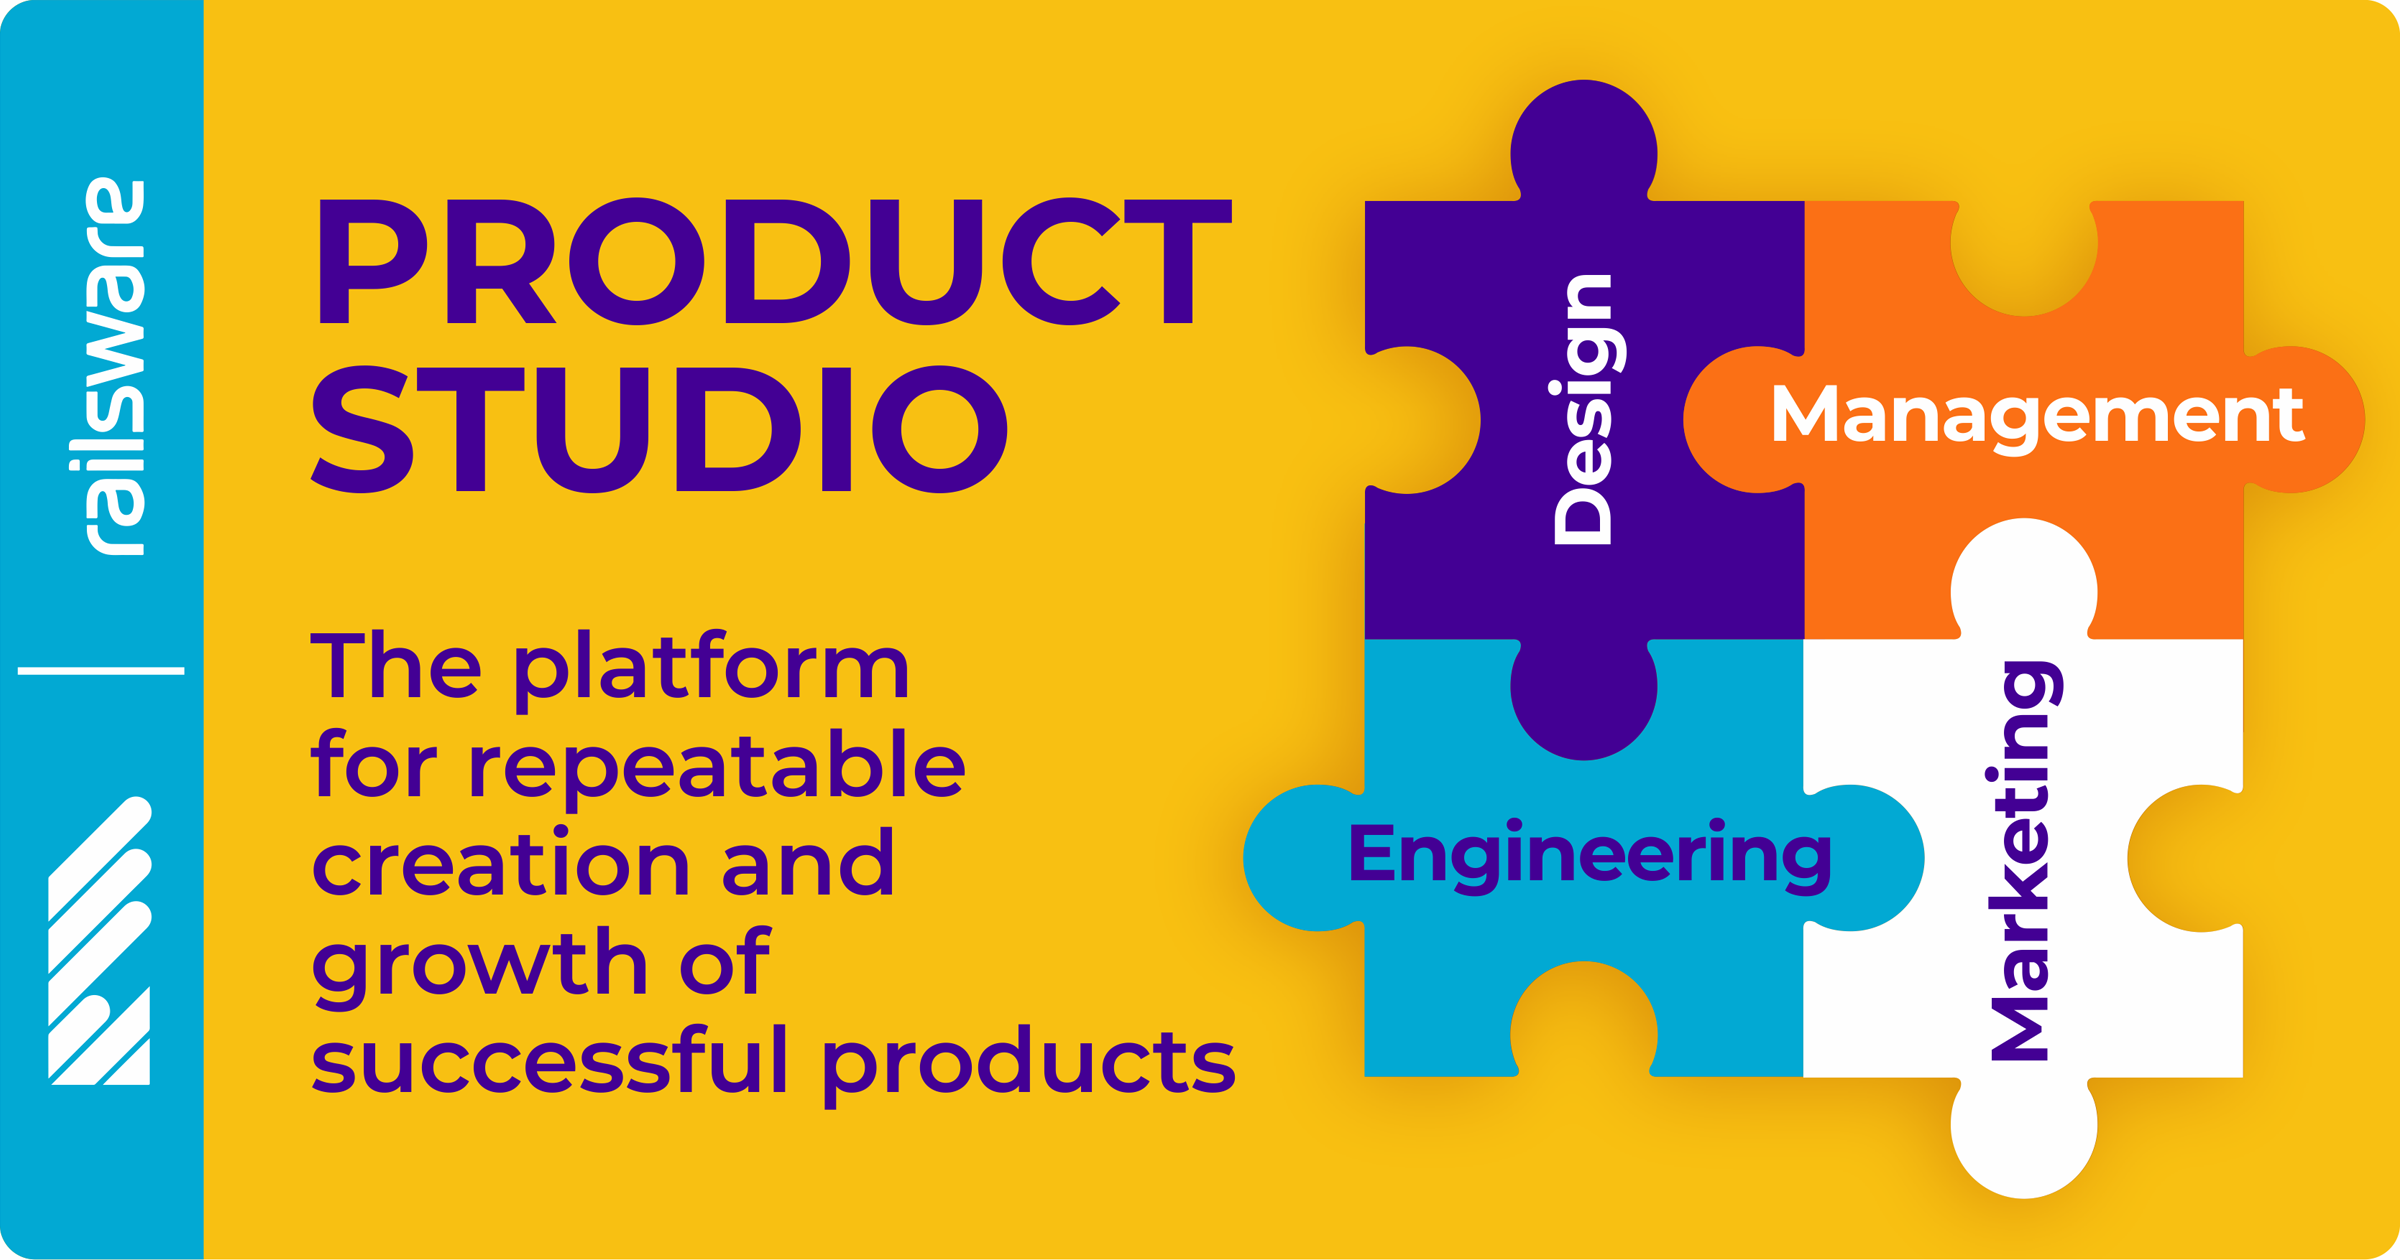 What is product studio and its values